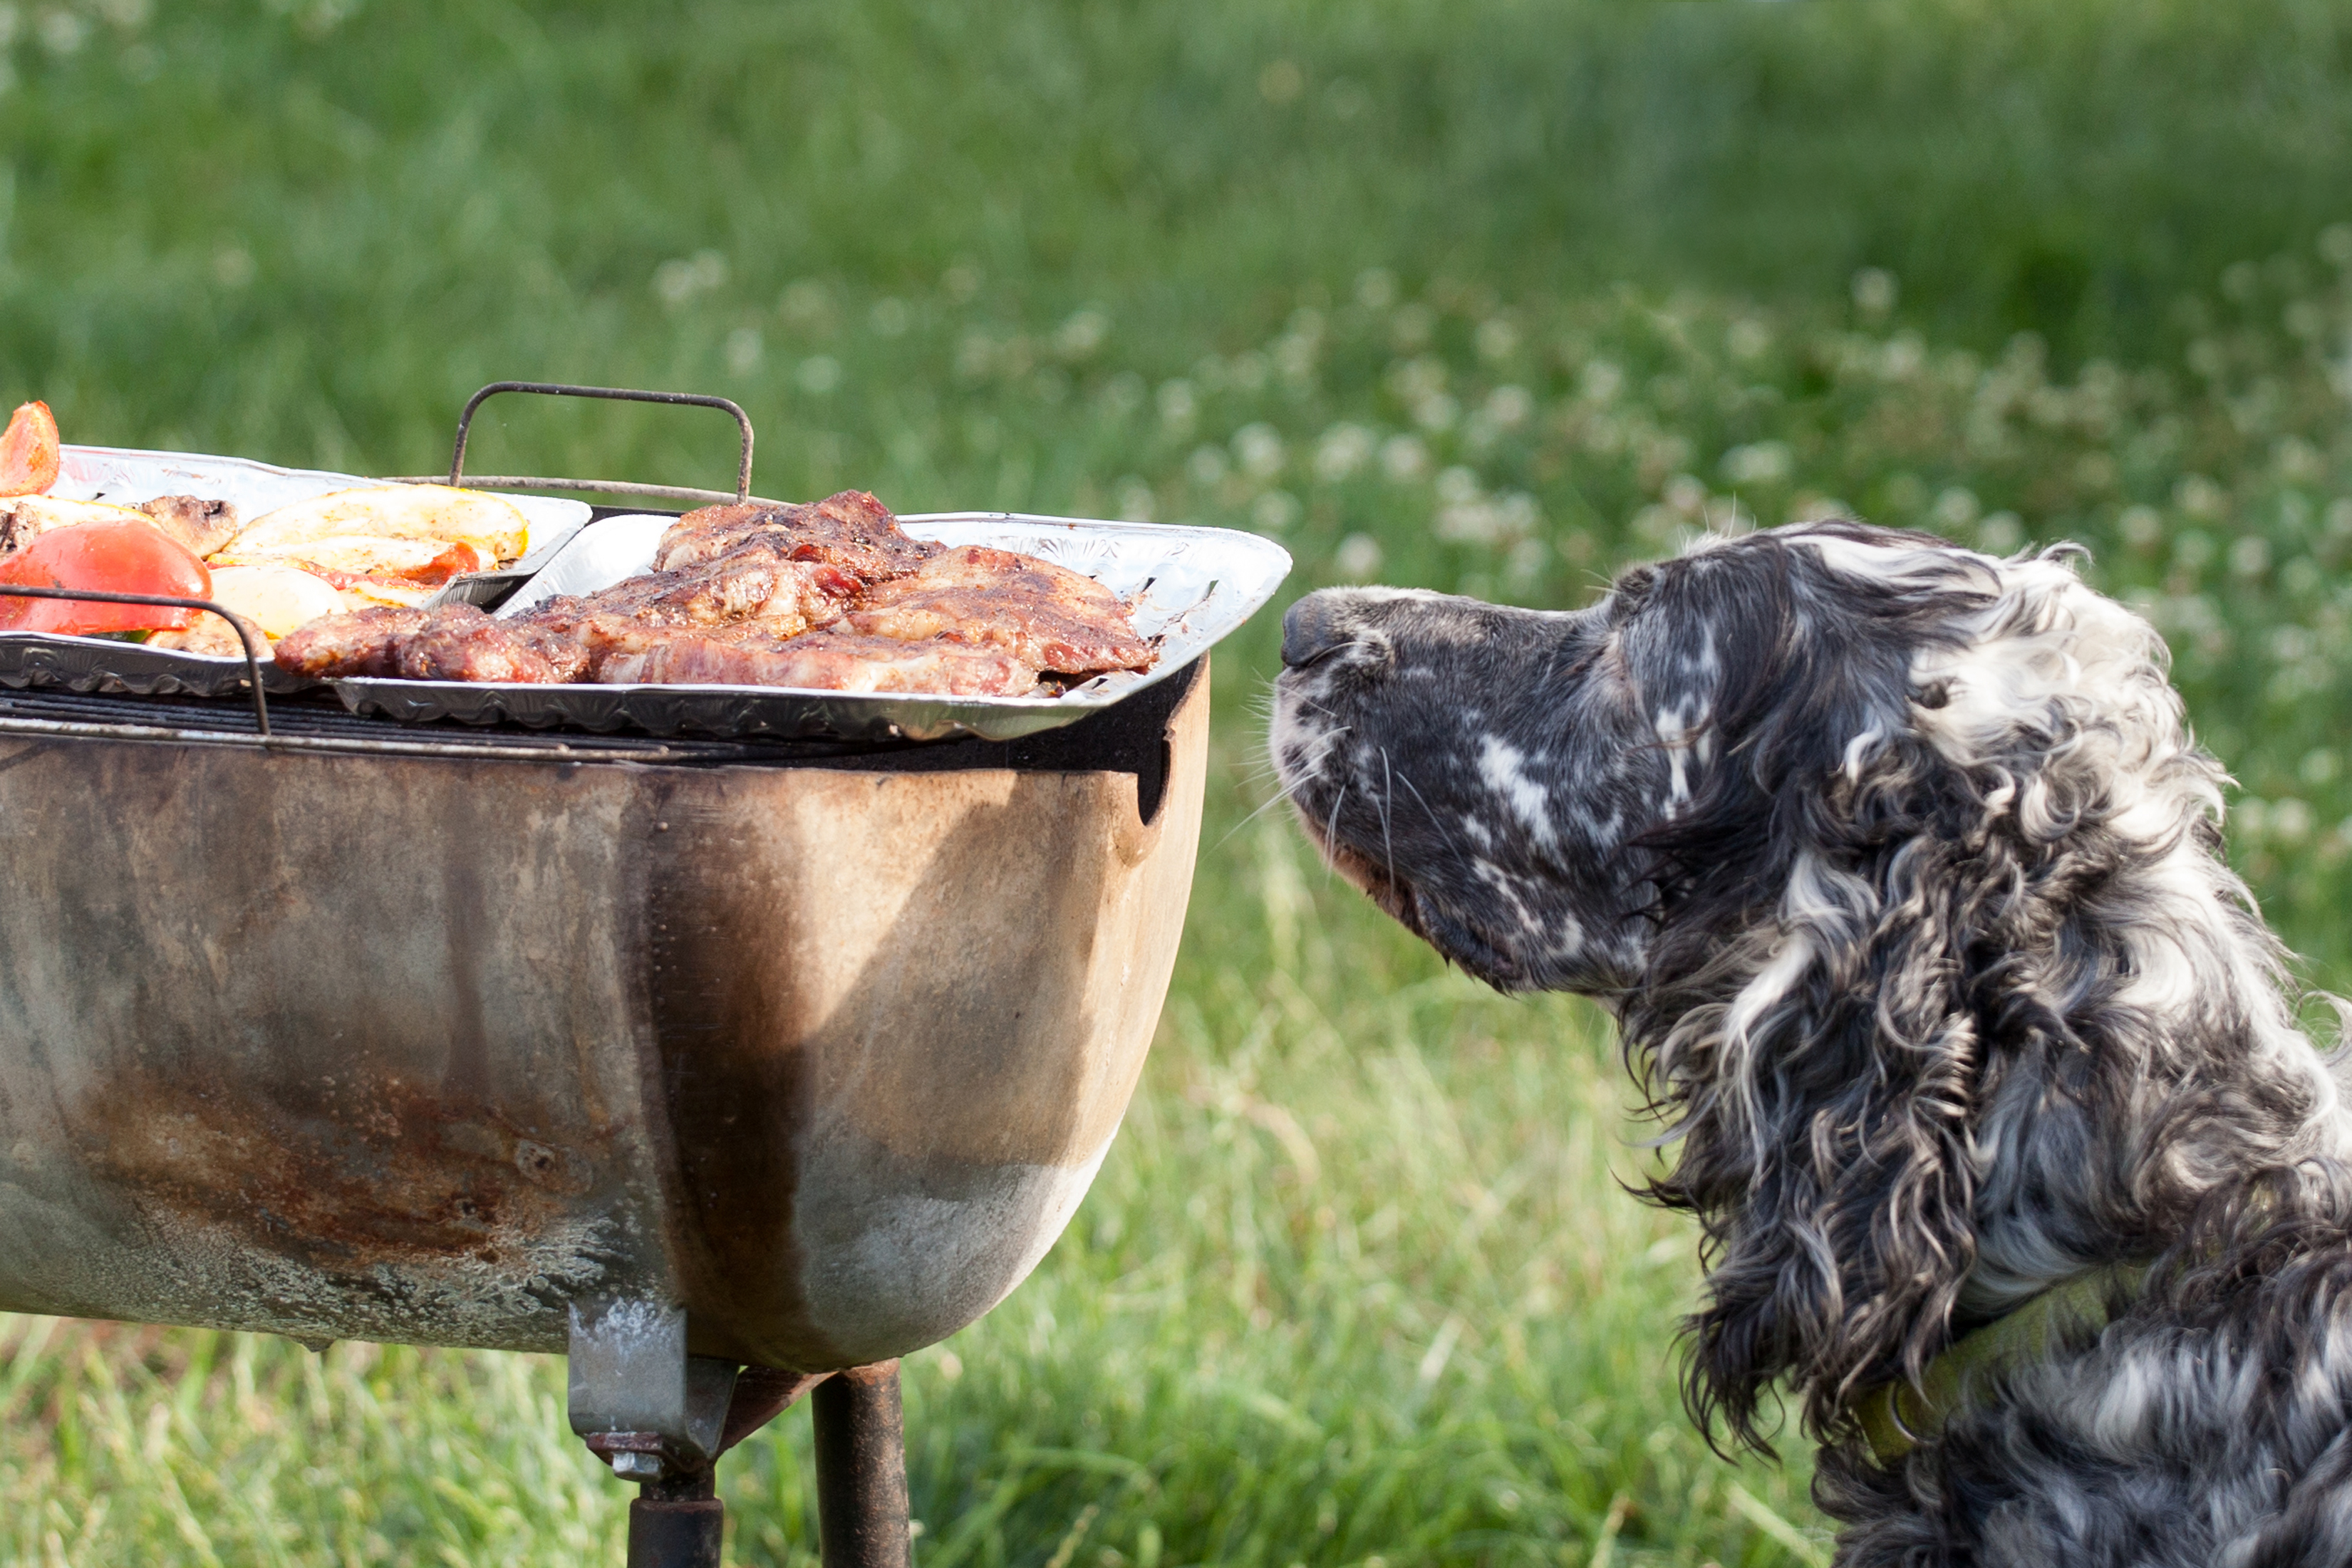 daily-wag-hot-diggity-dog-what-can-my-pups-eat-on-labor-day-hero-image